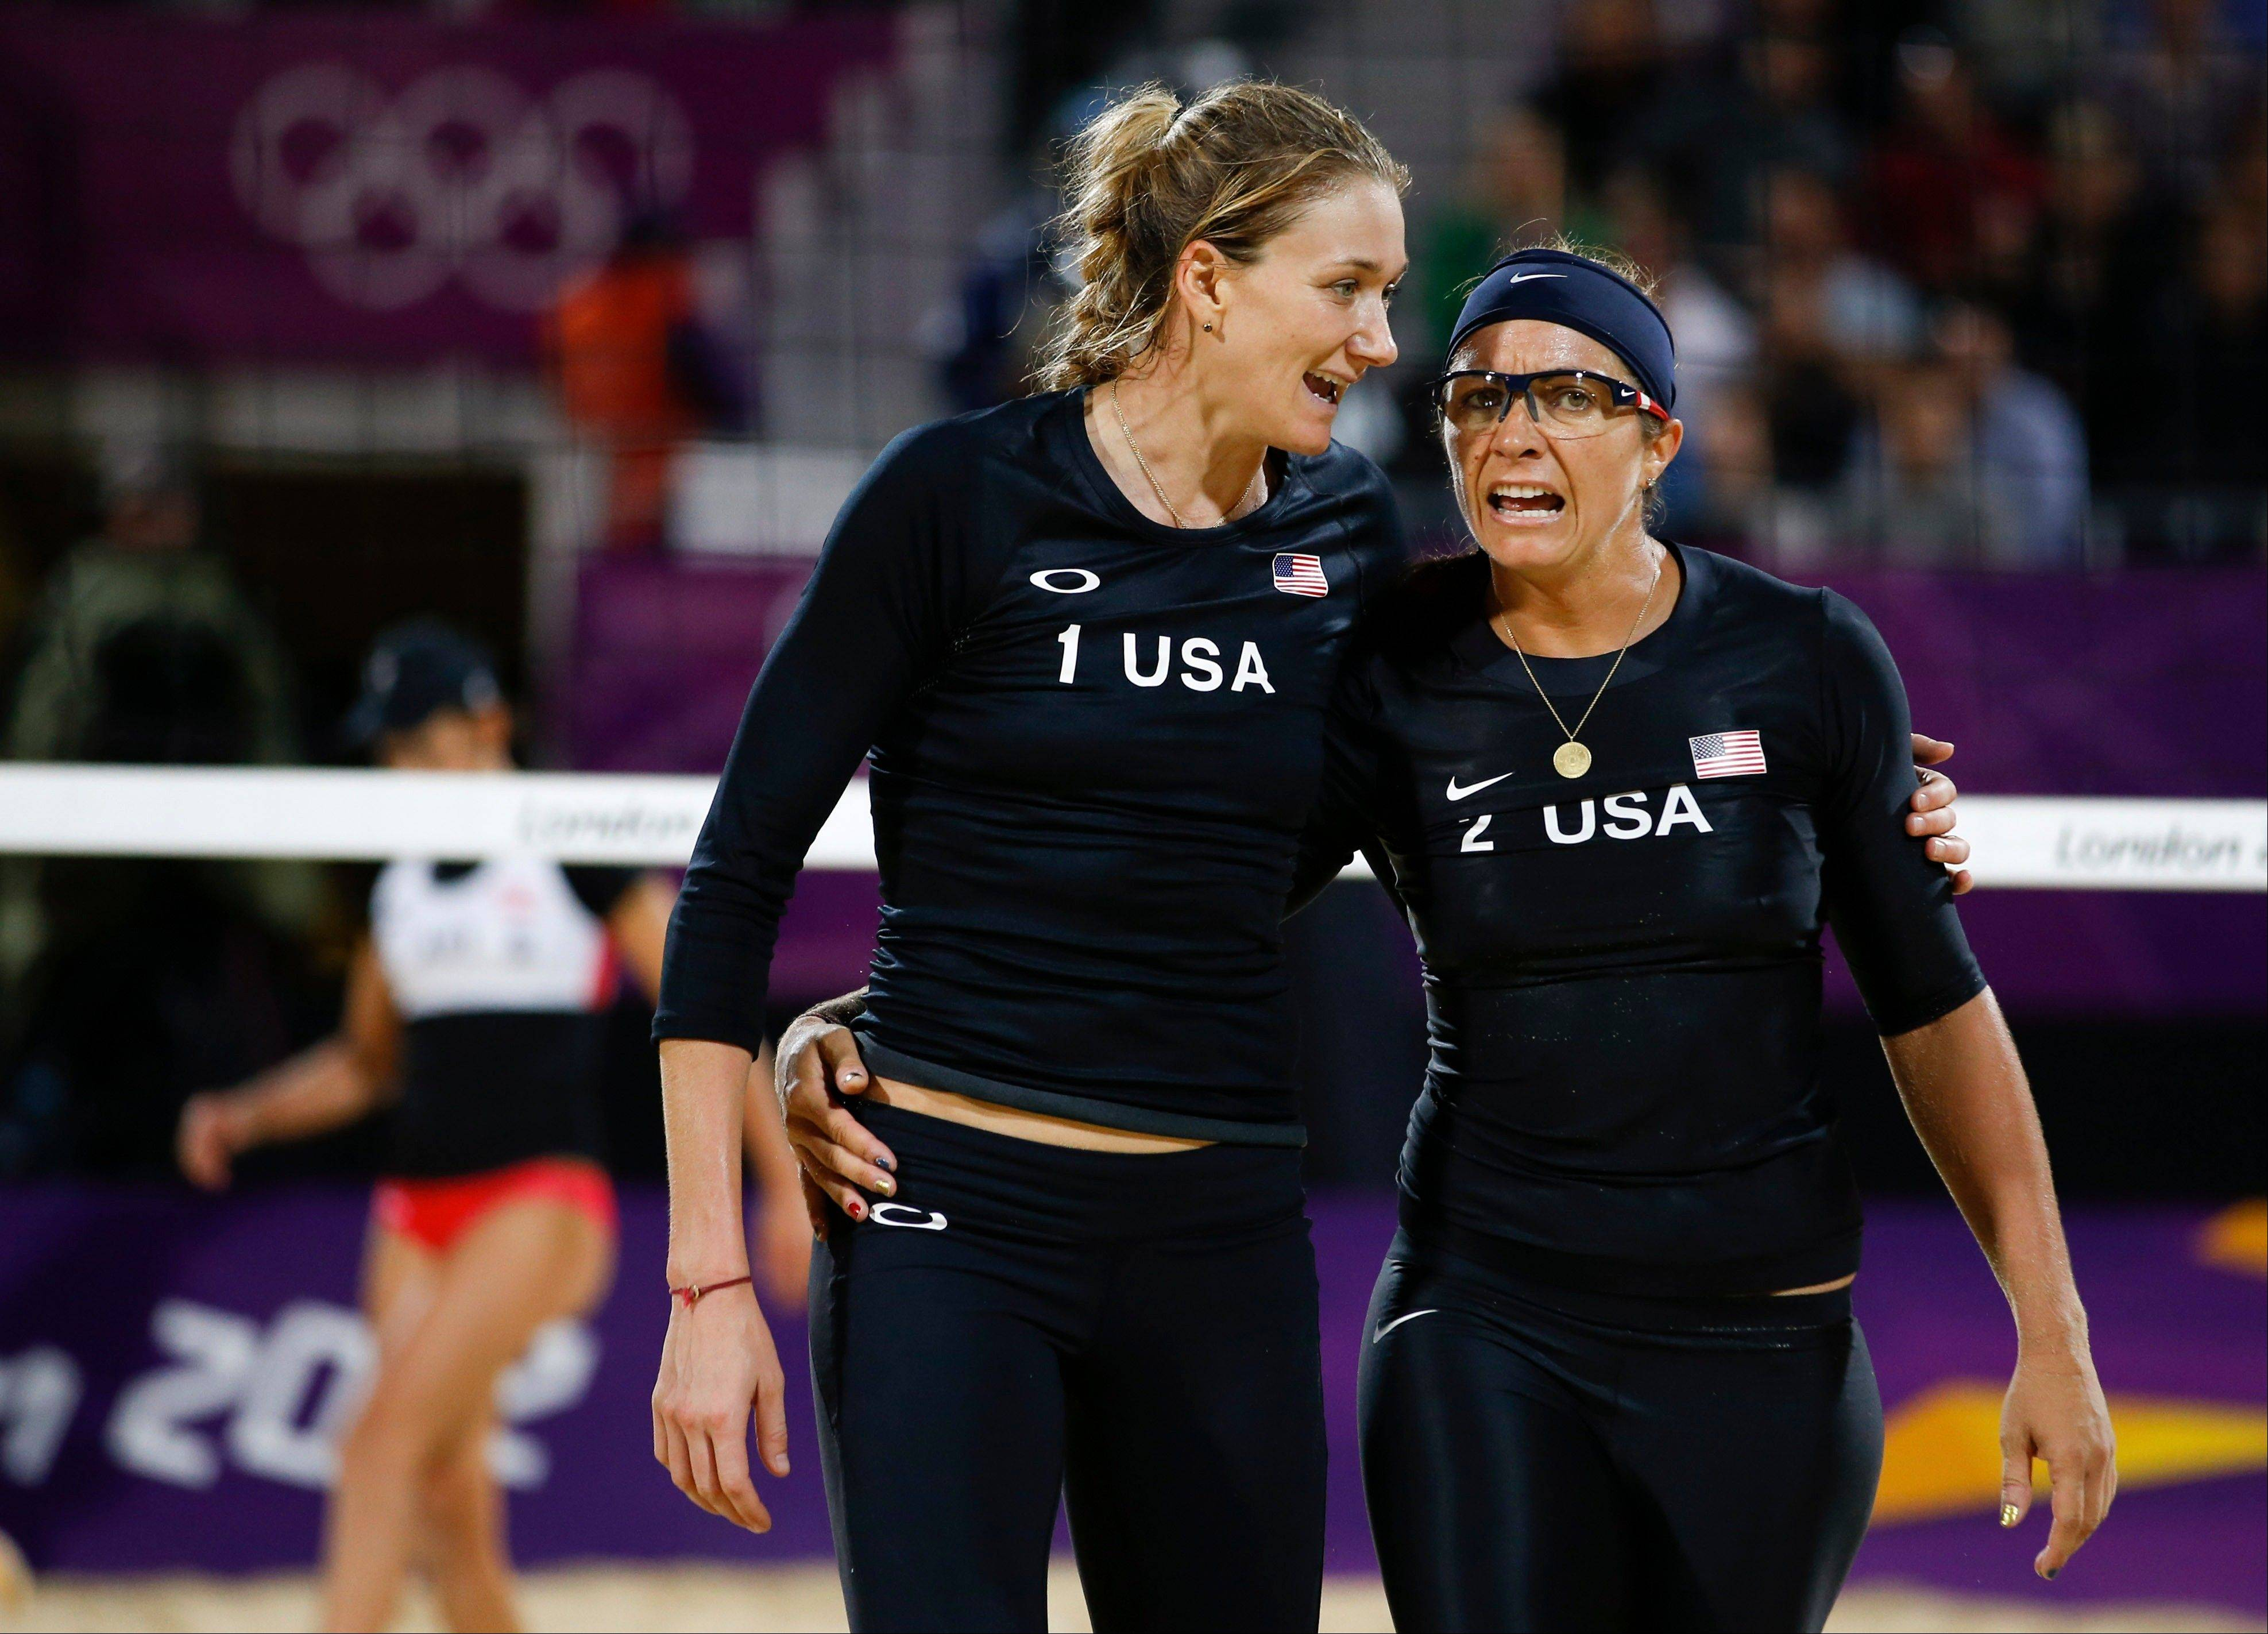 United States' Kerri Walsh, left, and Misty May-Treanor chat during a beach volleyball match against Austria's Doris Schwaiger and Stefanie Schwaiger at the 2012 London Olympics on Thursday. The defending champion Americans won their match, but waiting until NBC's prime-time show to find out was difficult, since the match was played hours earlier.